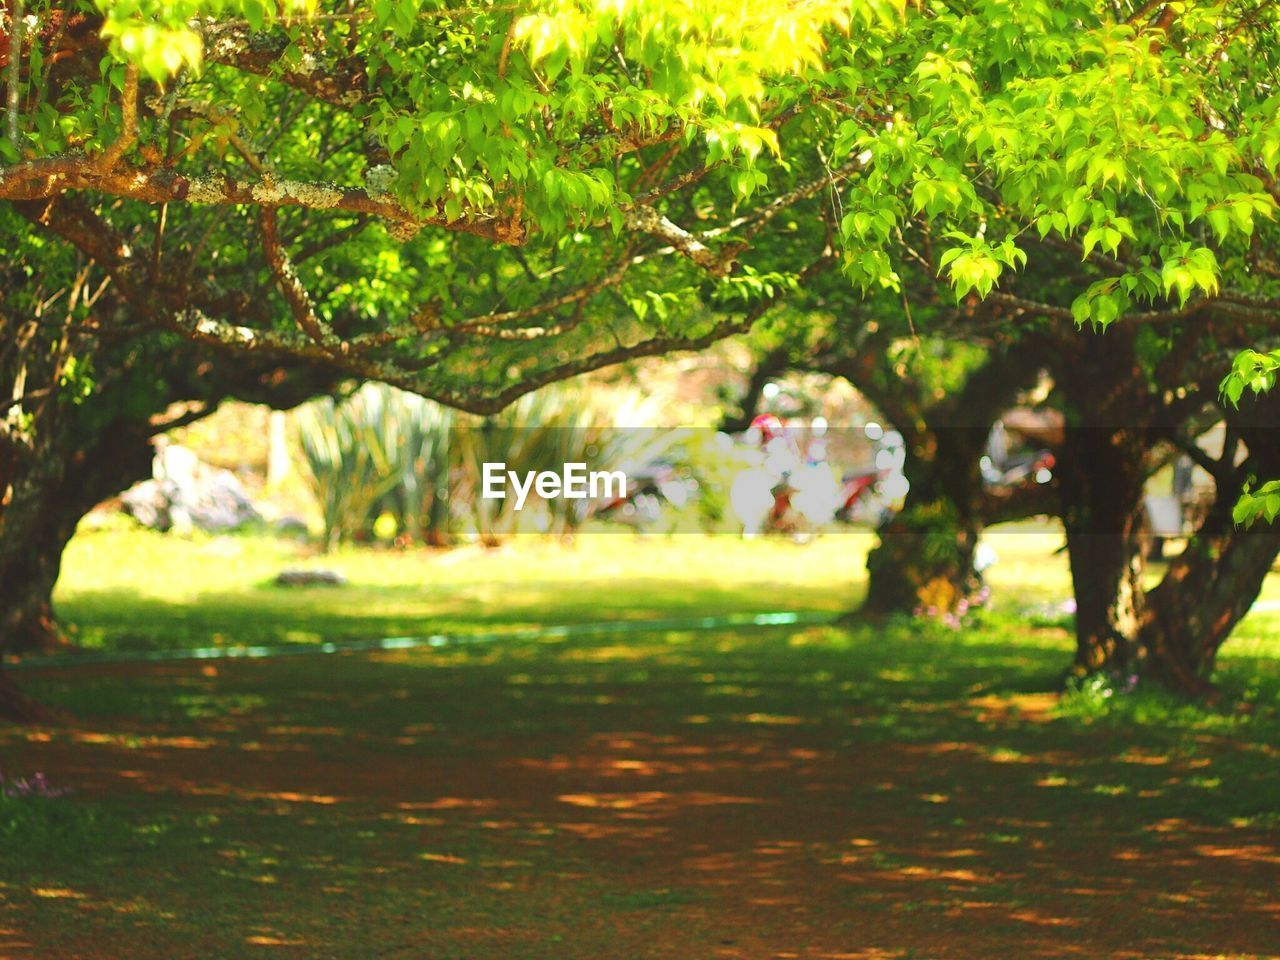 tree, nature, growth, branch, beauty in nature, green color, outdoors, grass, field, day, tranquility, tranquil scene, no people, park - man made space, scenics, freshness, close-up